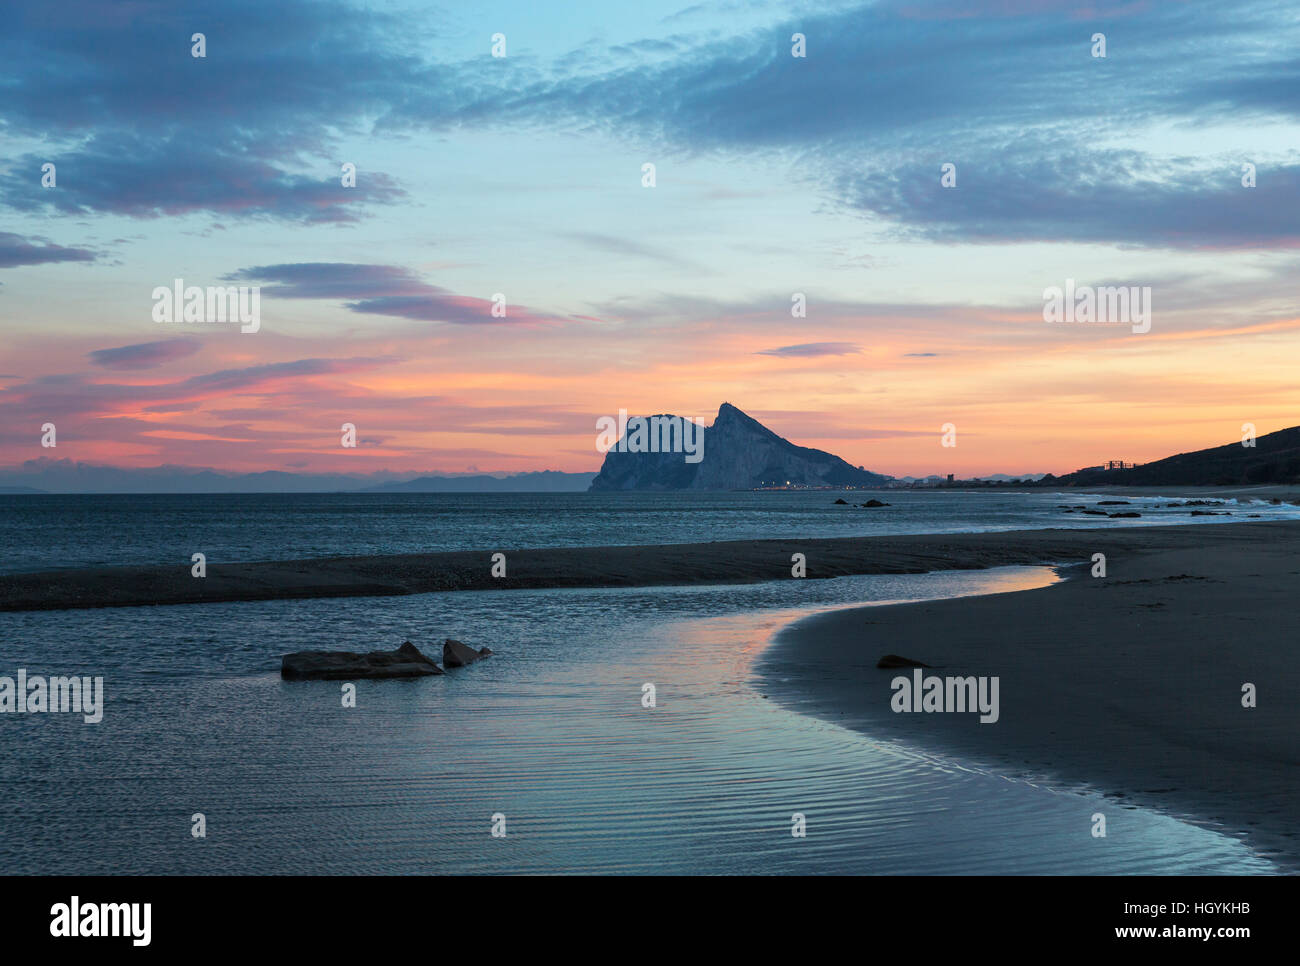 View of The Rock of Gibraltar and La Linea de la Concepcion as seen from the Mediterranean coast at sunset, Cadiz, Stock Photo